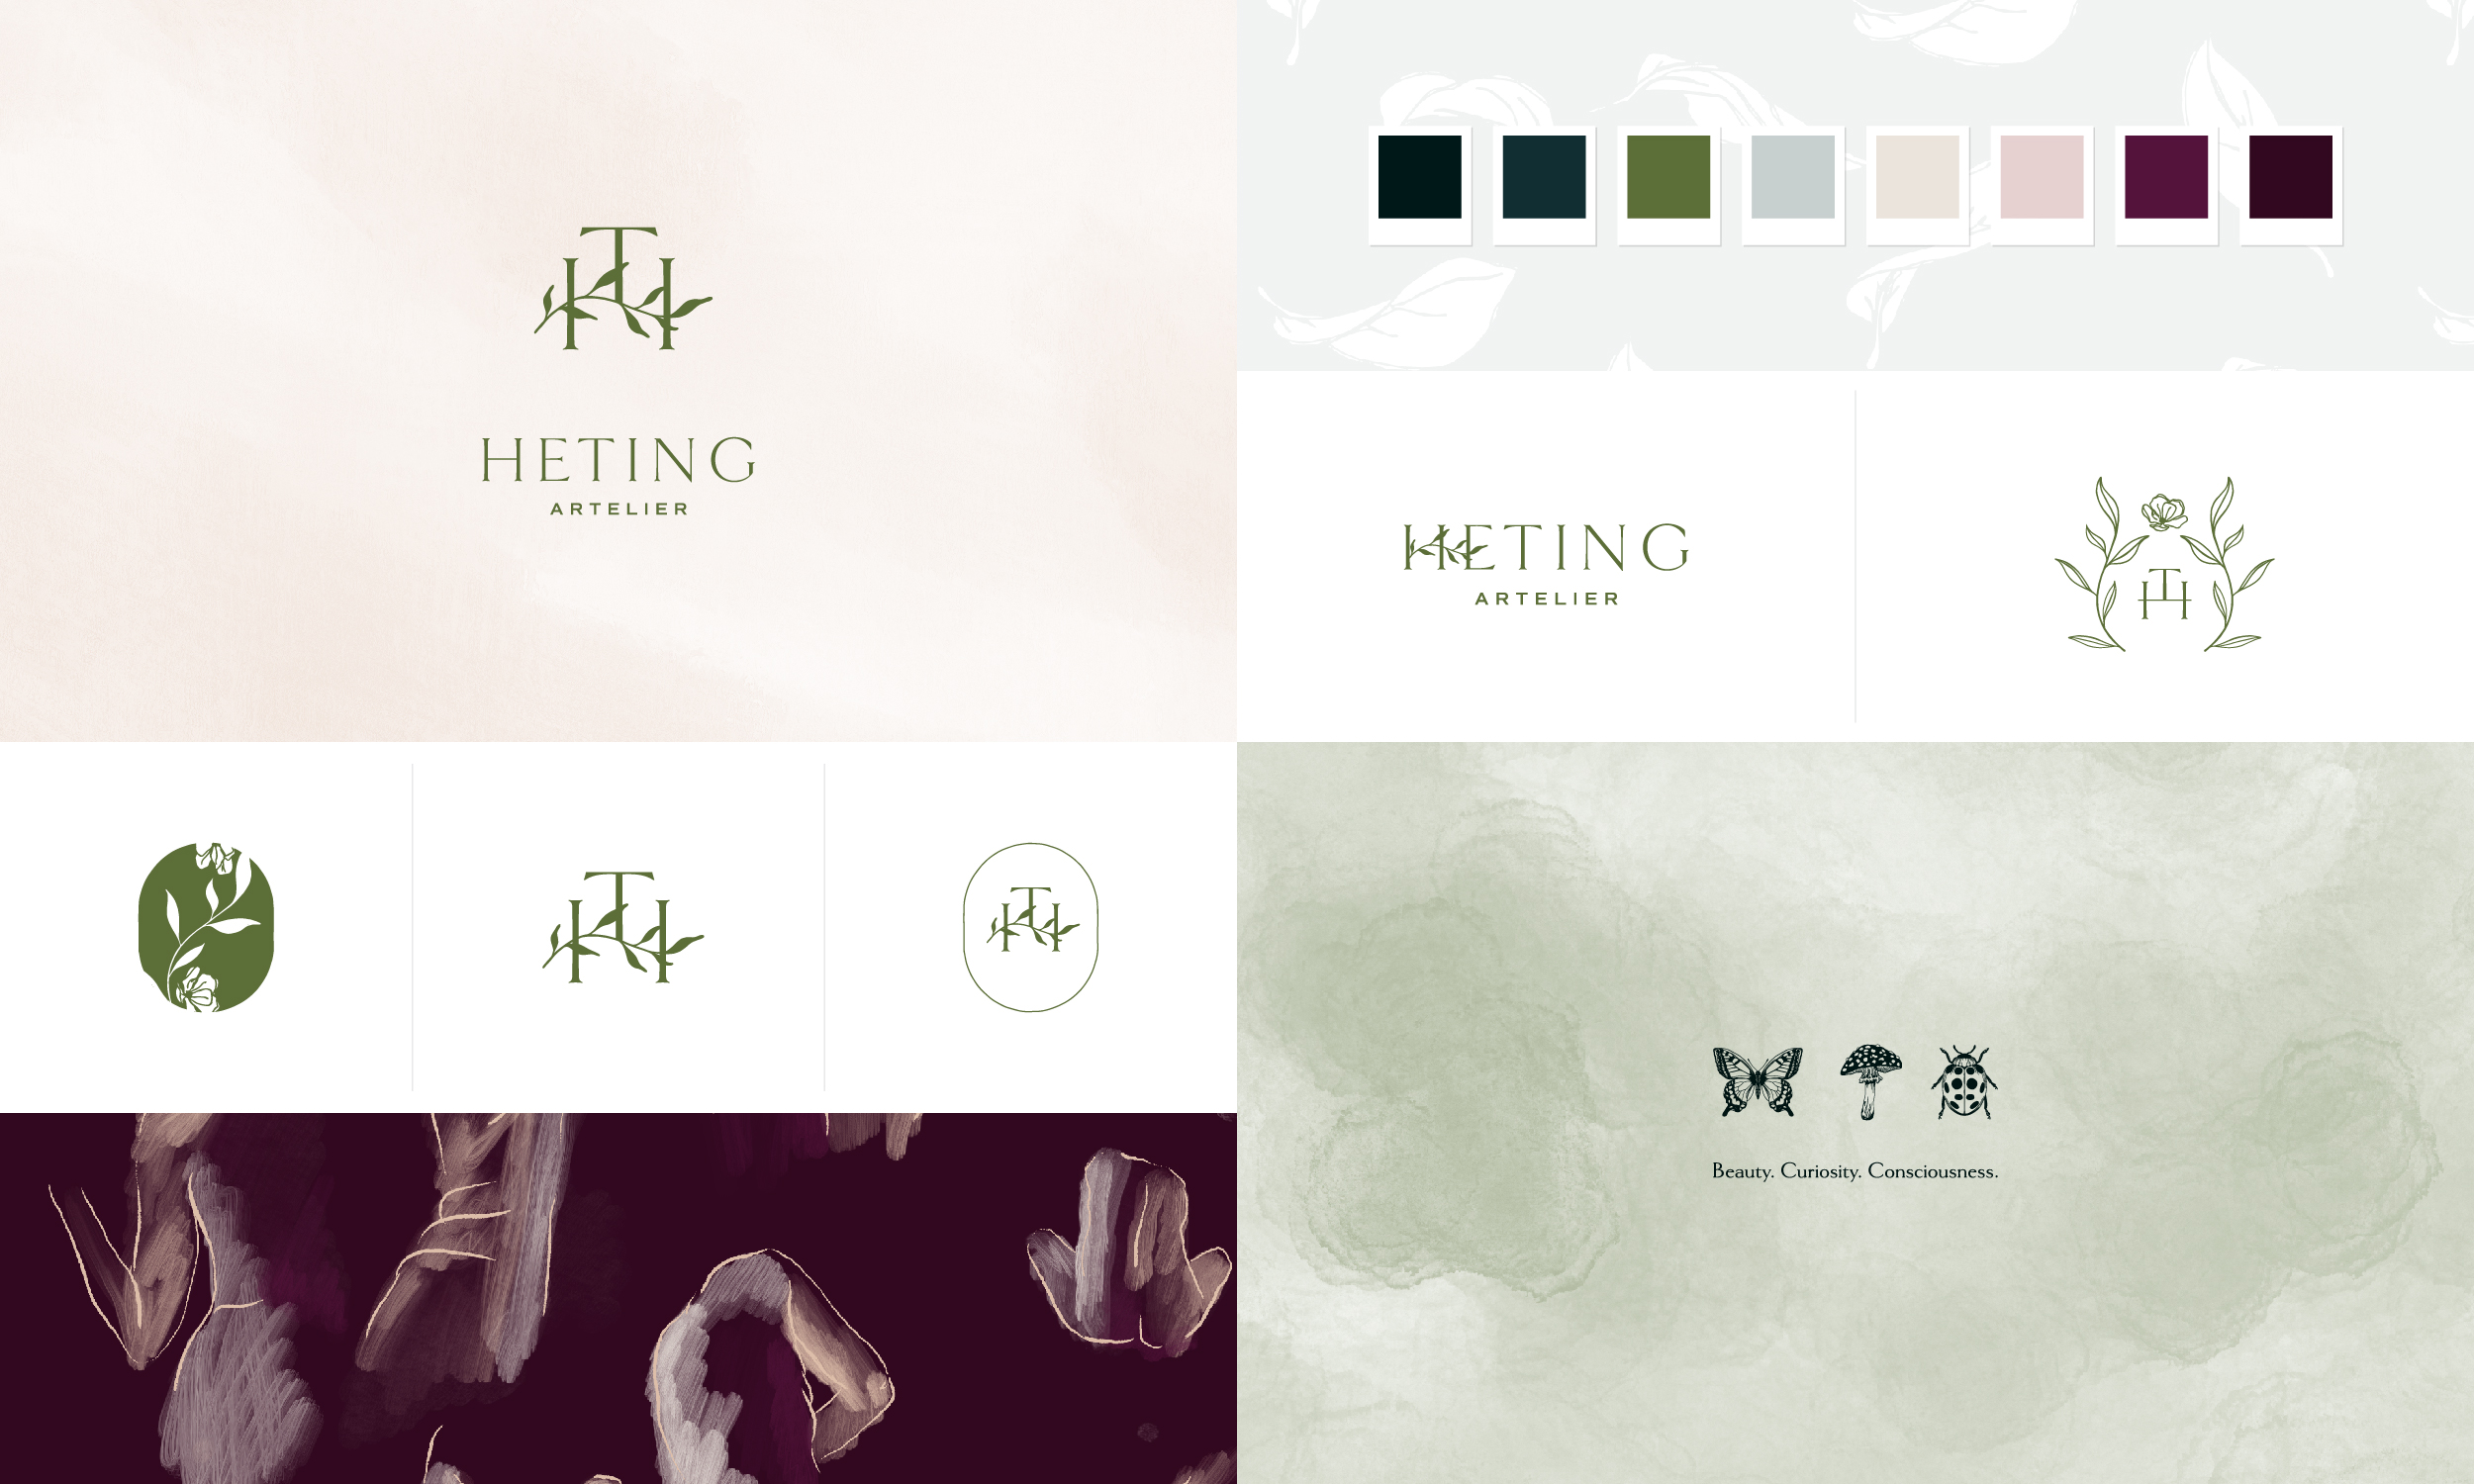 Heting Artelier branding and strategy by Freckled Design Studio